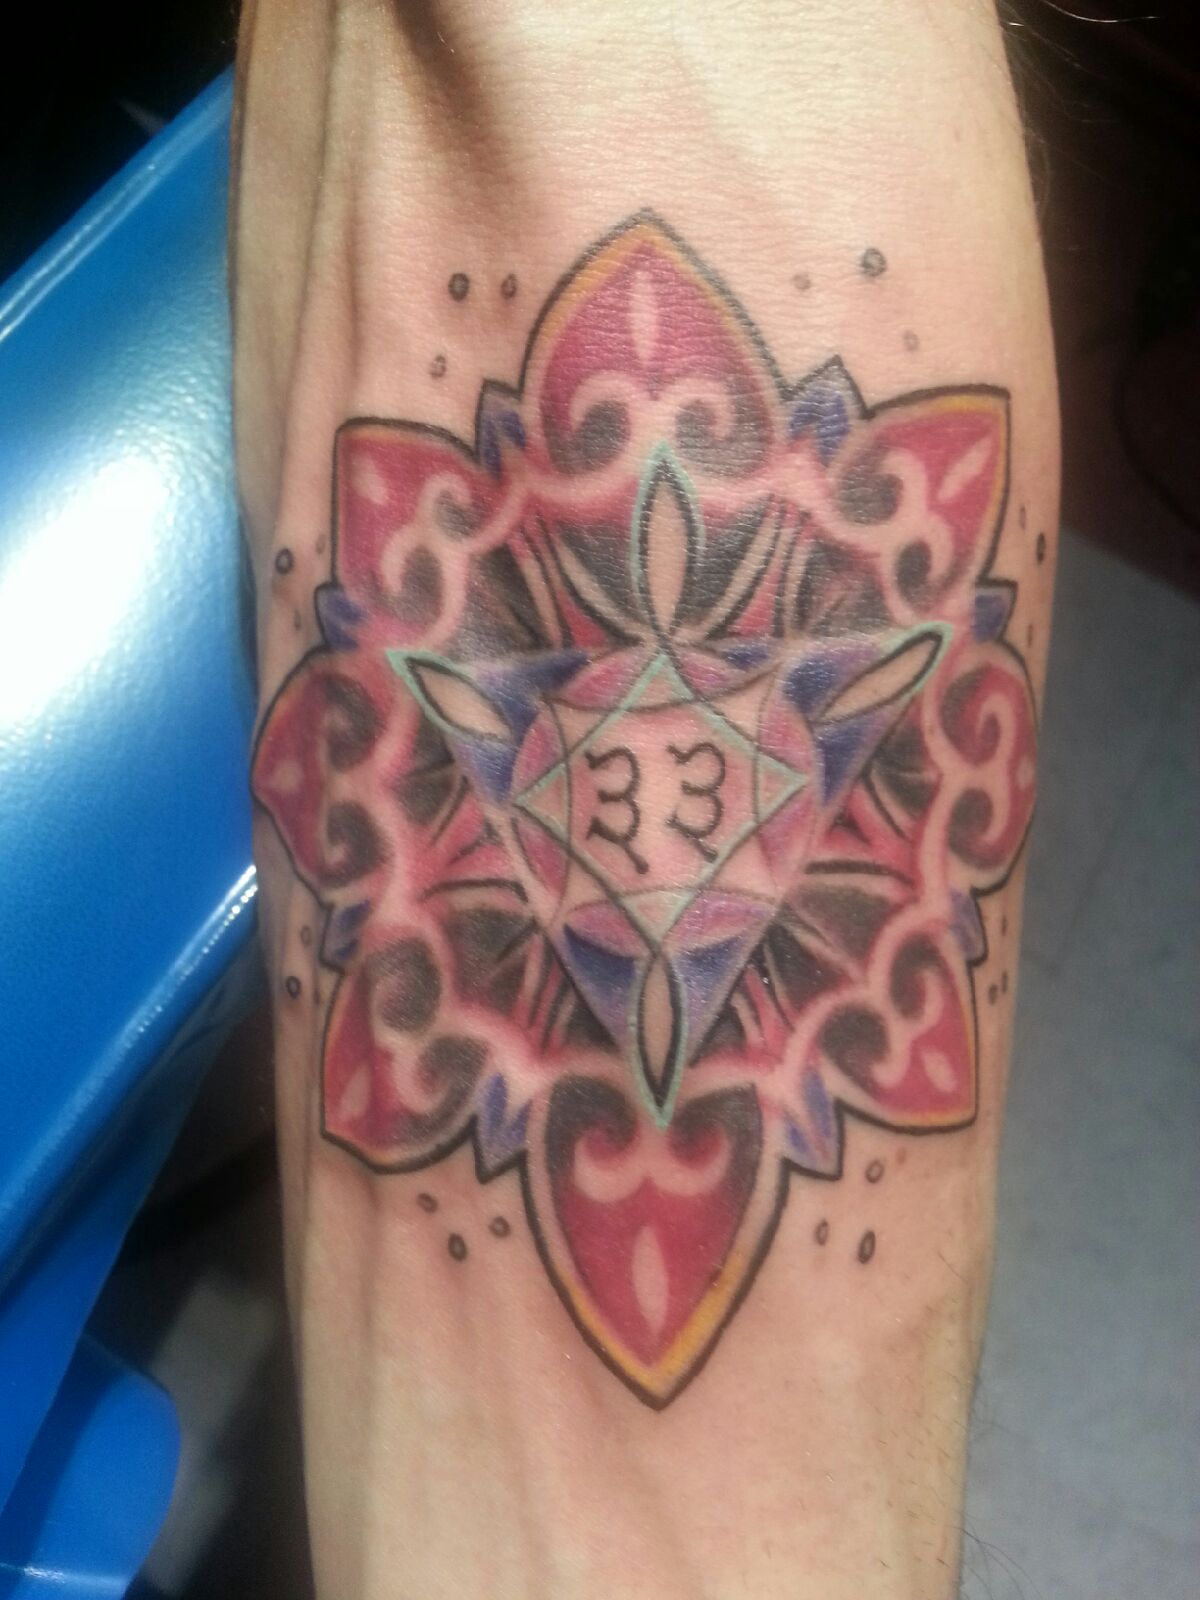 Check out this mandala tattoo recently done at majestic